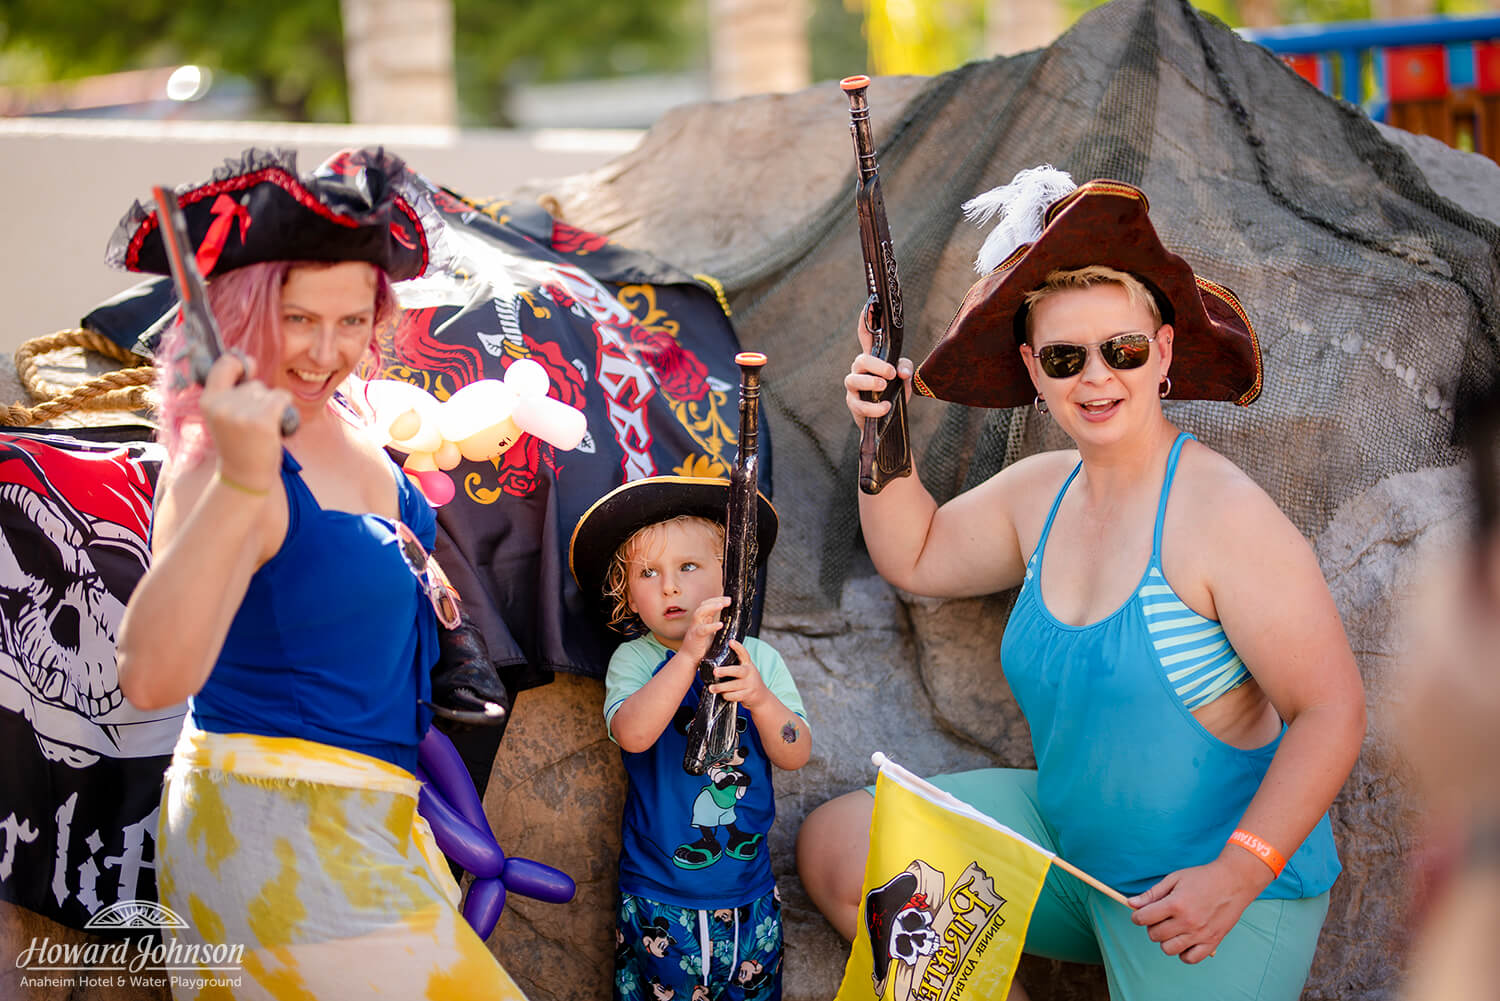 two women and a little boy pose with toy guns and pirate hats for a photo